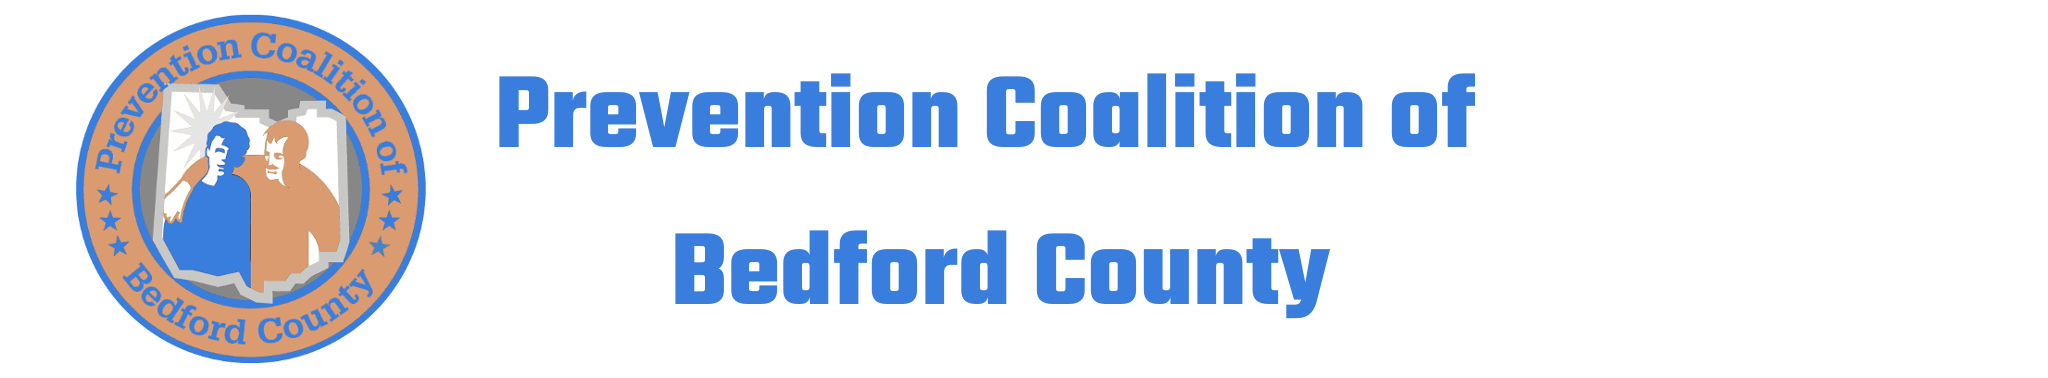 Prevention Coalition of Bedford County